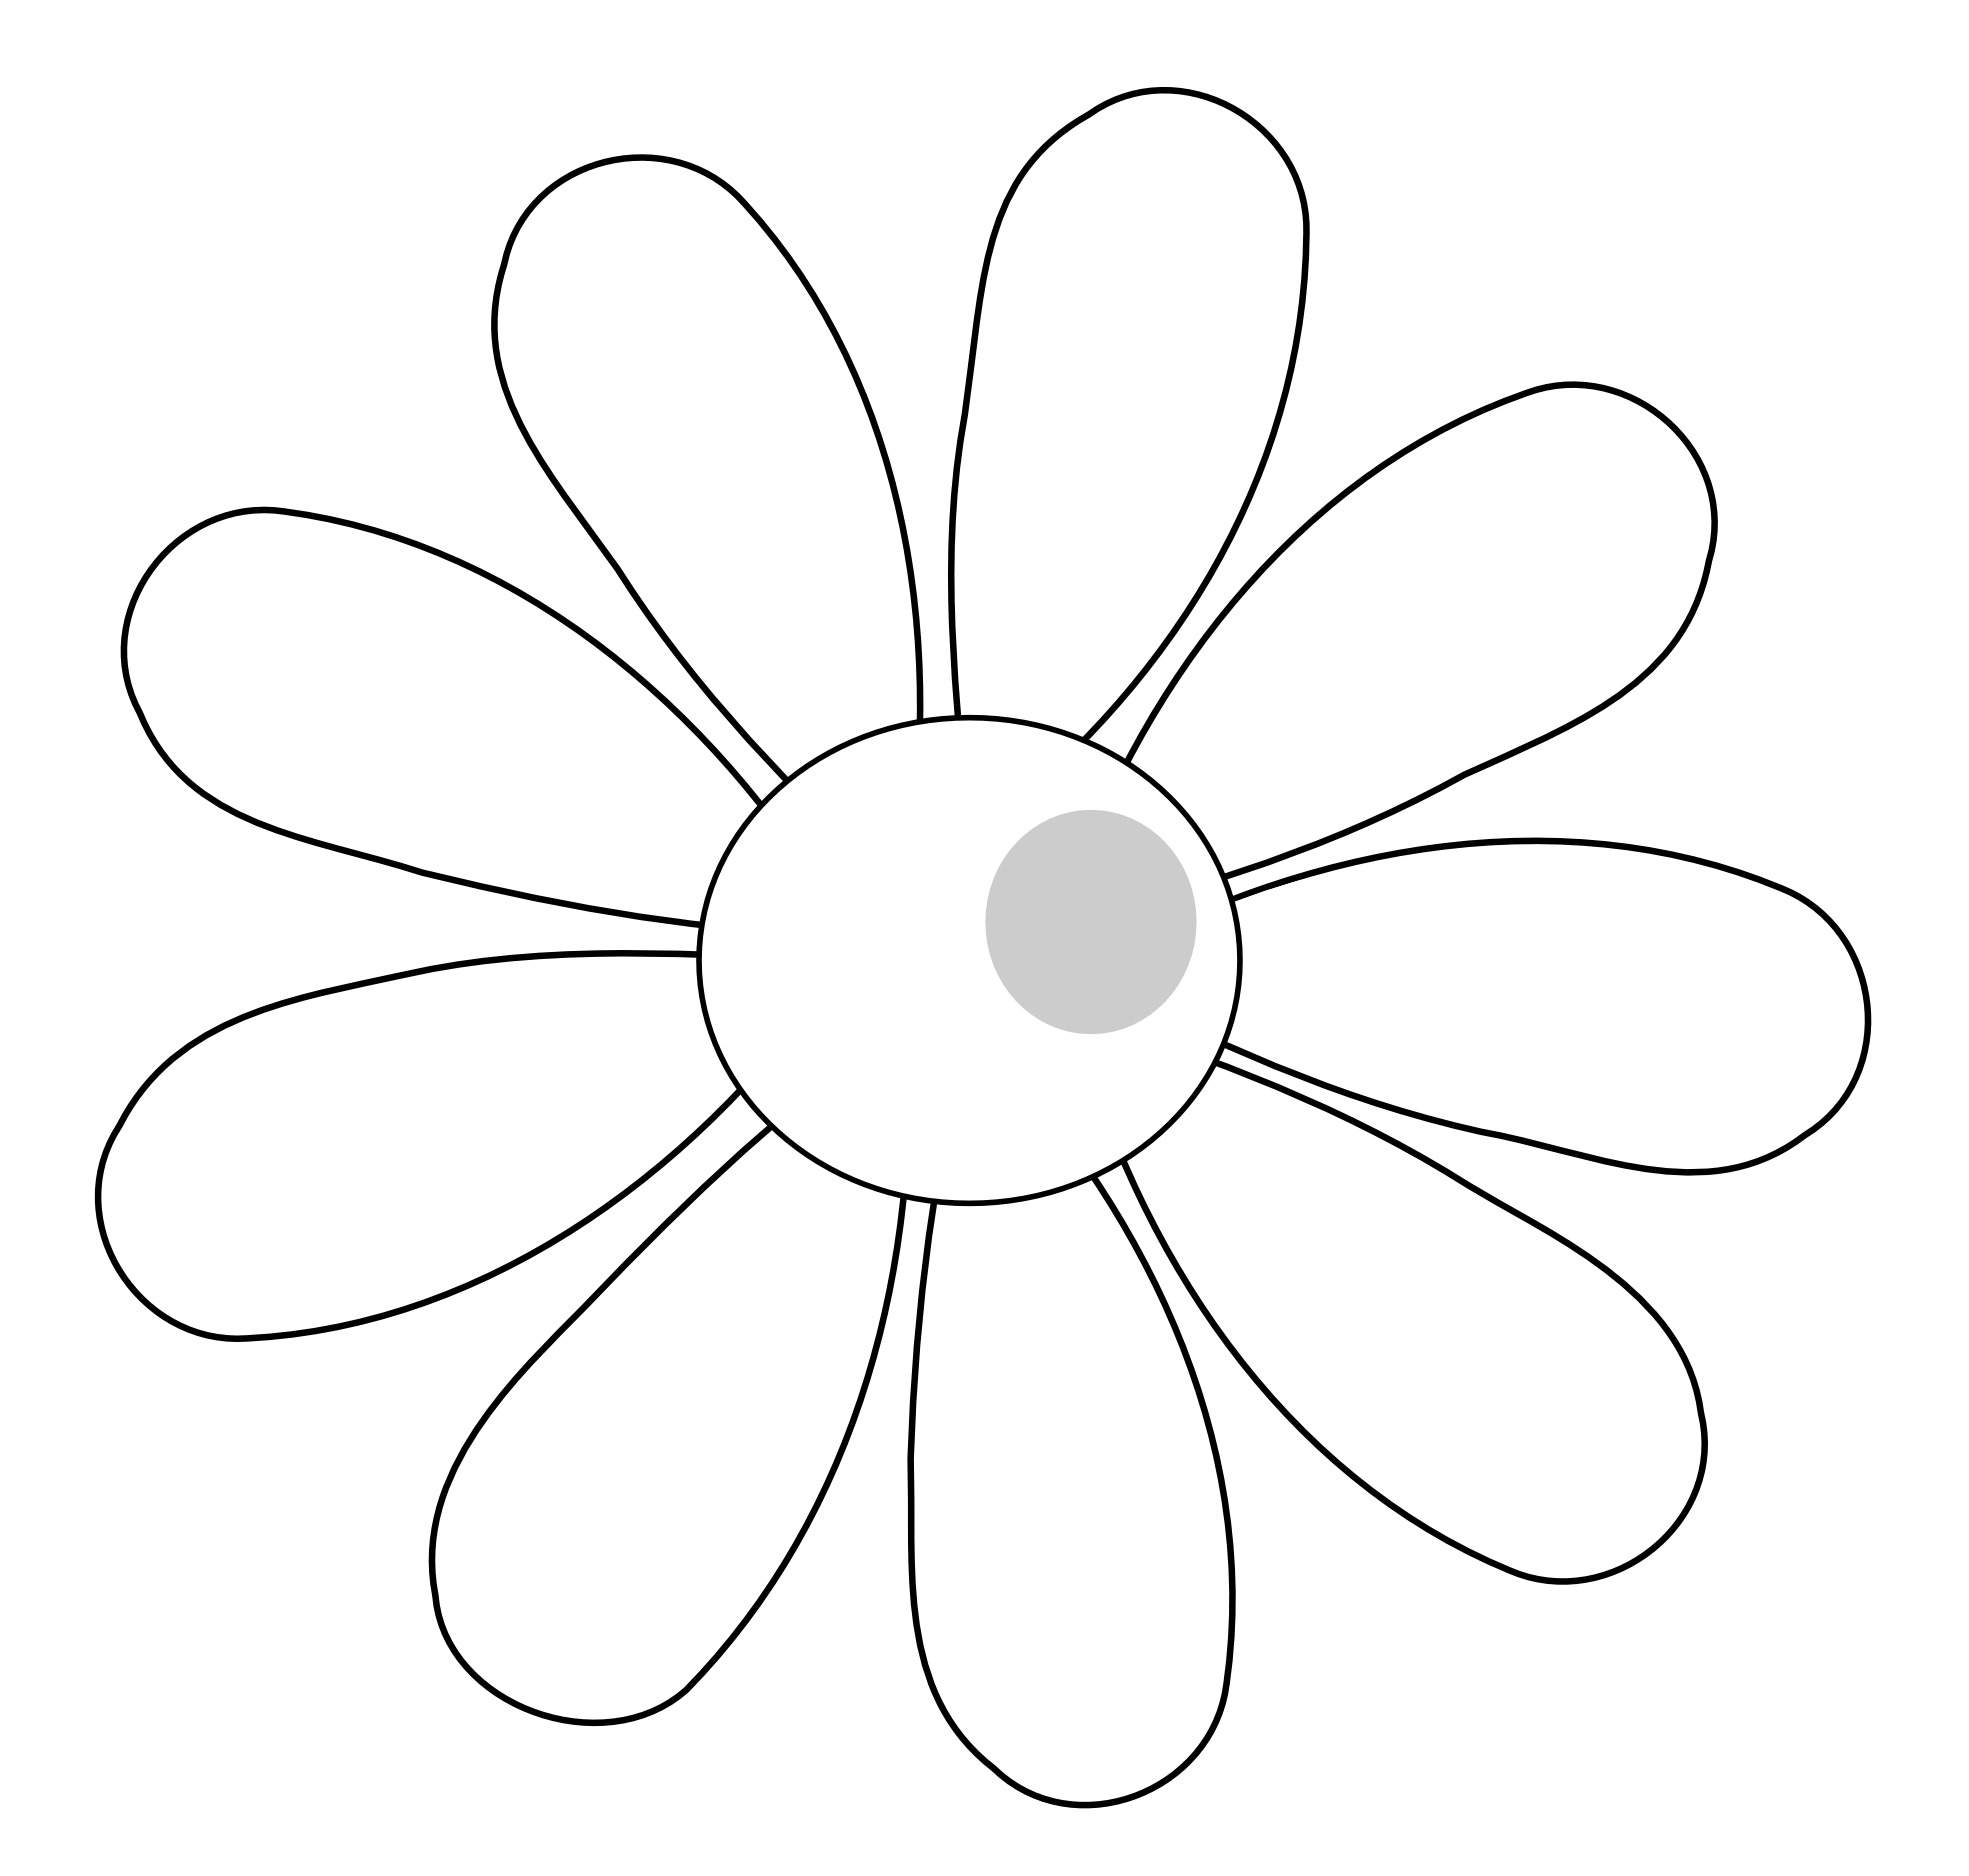 Simple flower clipart black and white clipart panda free clipart simple20flower20clipart20black20and20white mightylinksfo